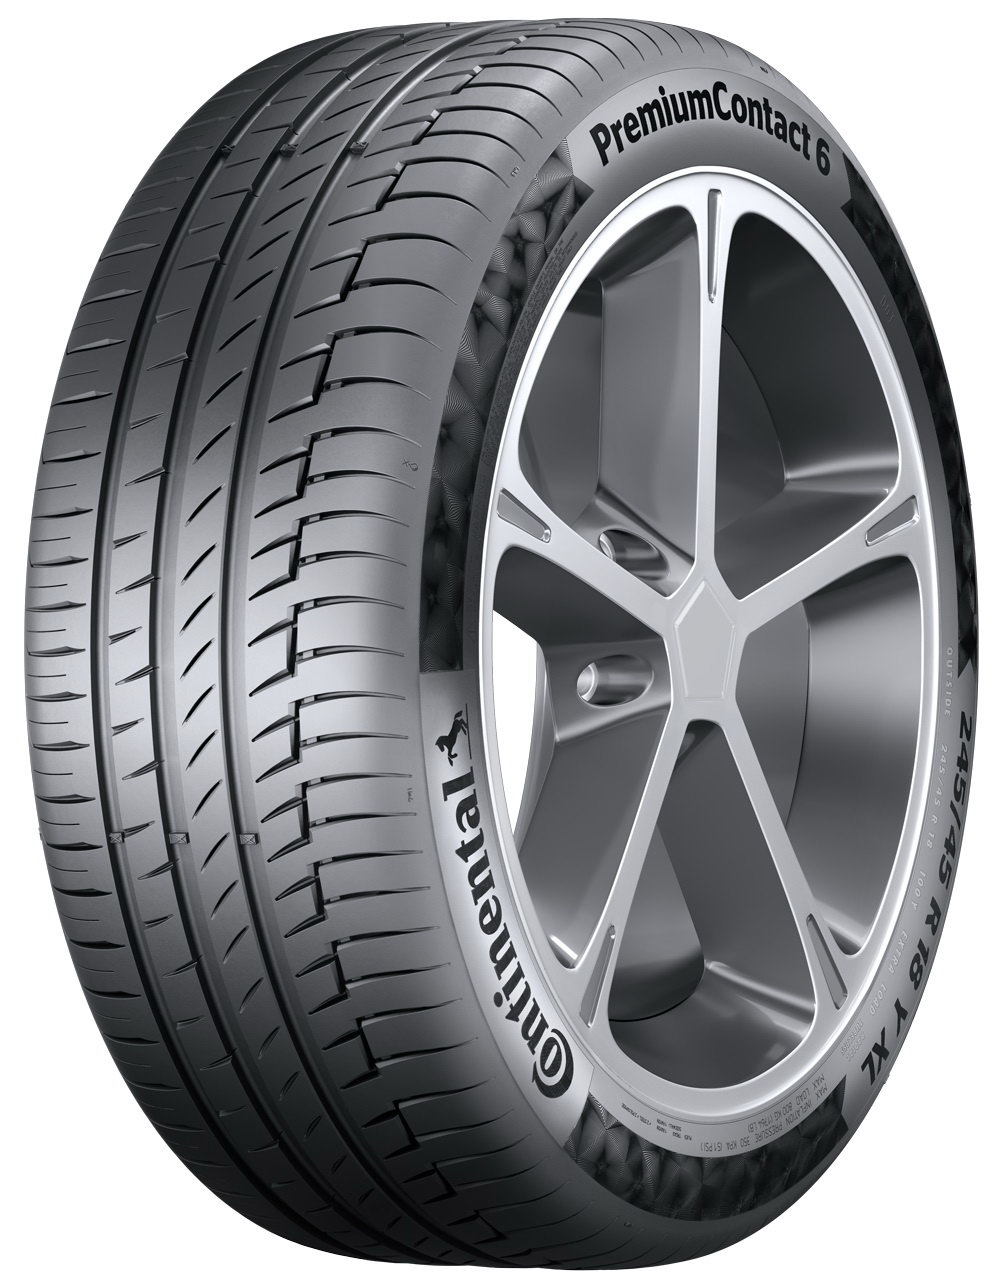 Anvelope vara CONTINENTAL PREMIUM CONTACT 6 215/55 R18 95H